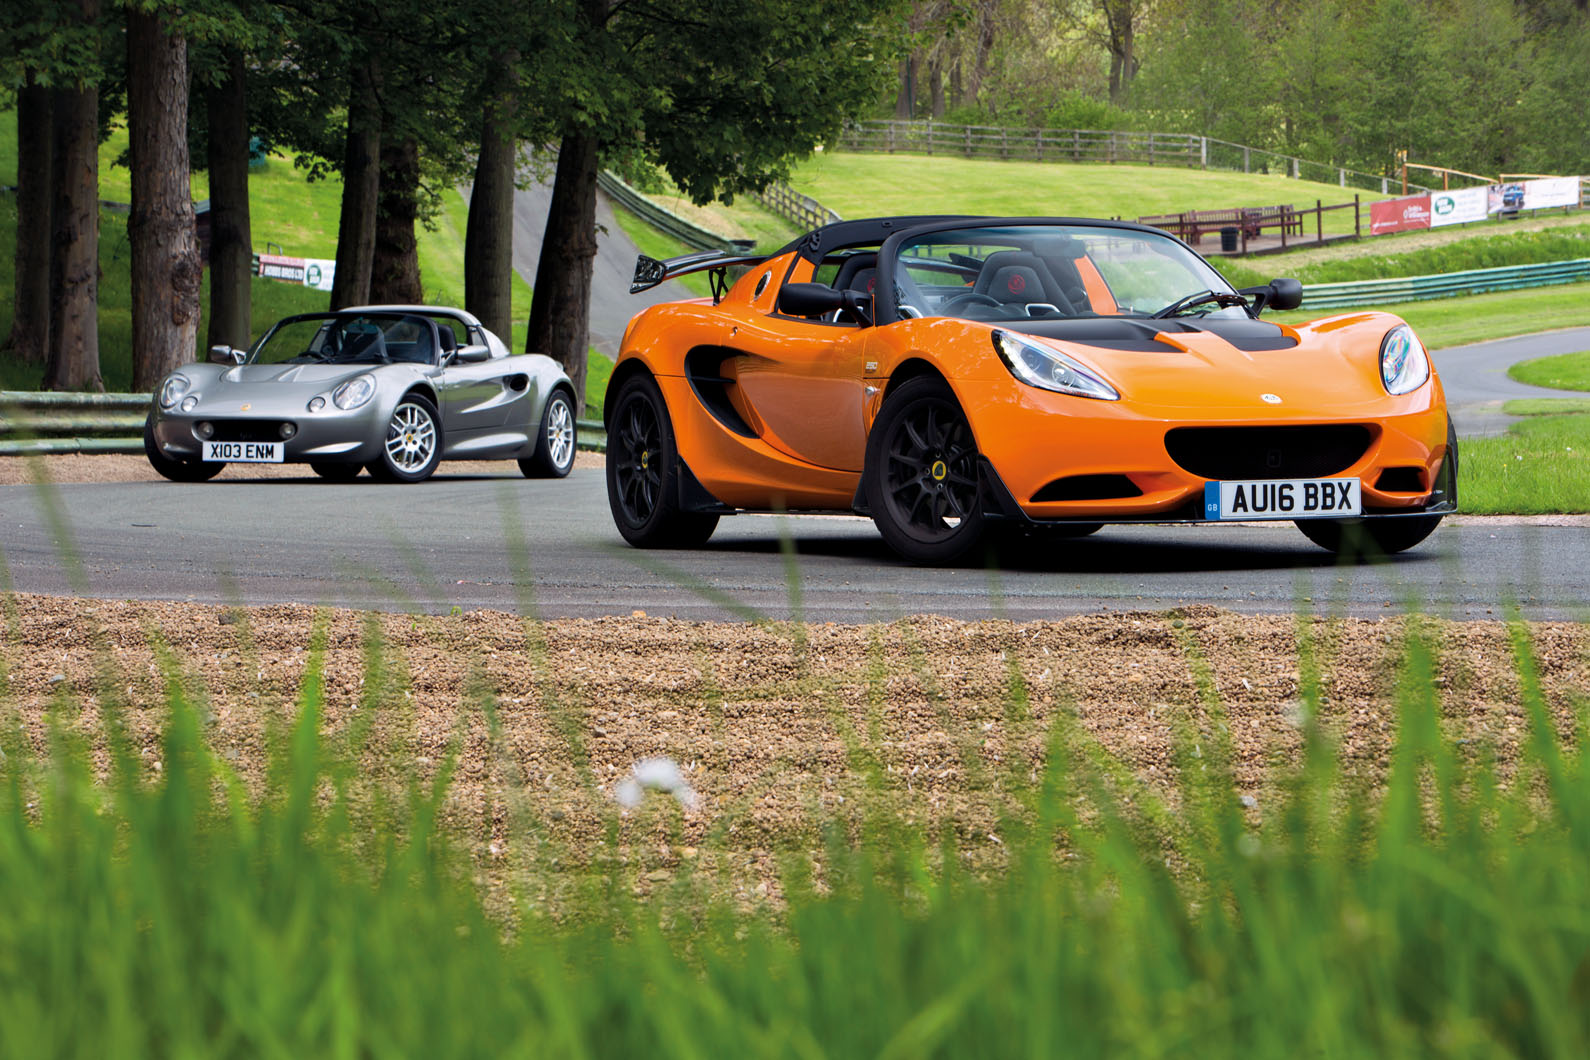 Lotus Elise Cup 250 as hostile to  fashioned Lotus Elise S1